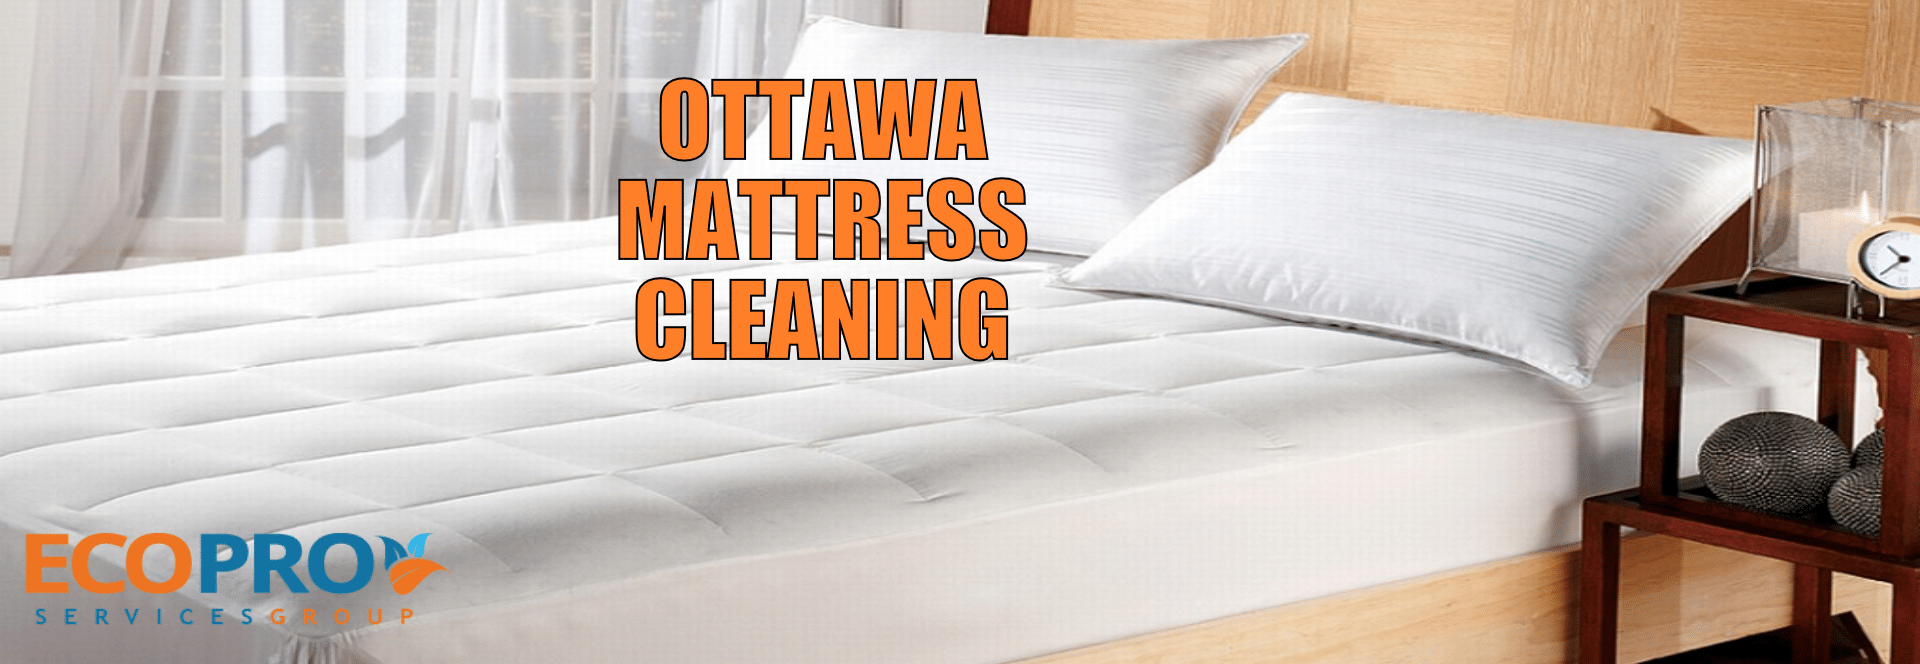 Mattress cleaning services in Ottawa, ontario